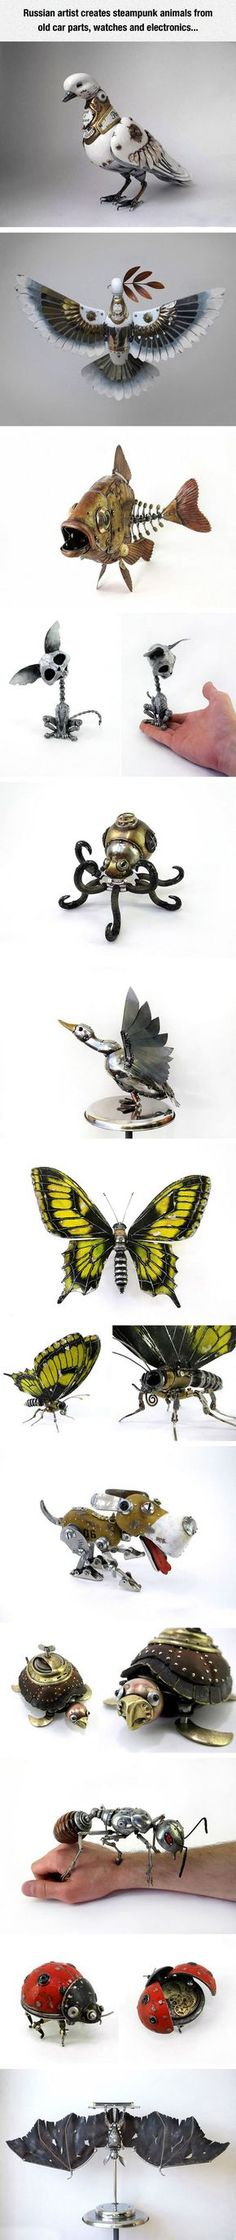 Steampunk animals from car parts.